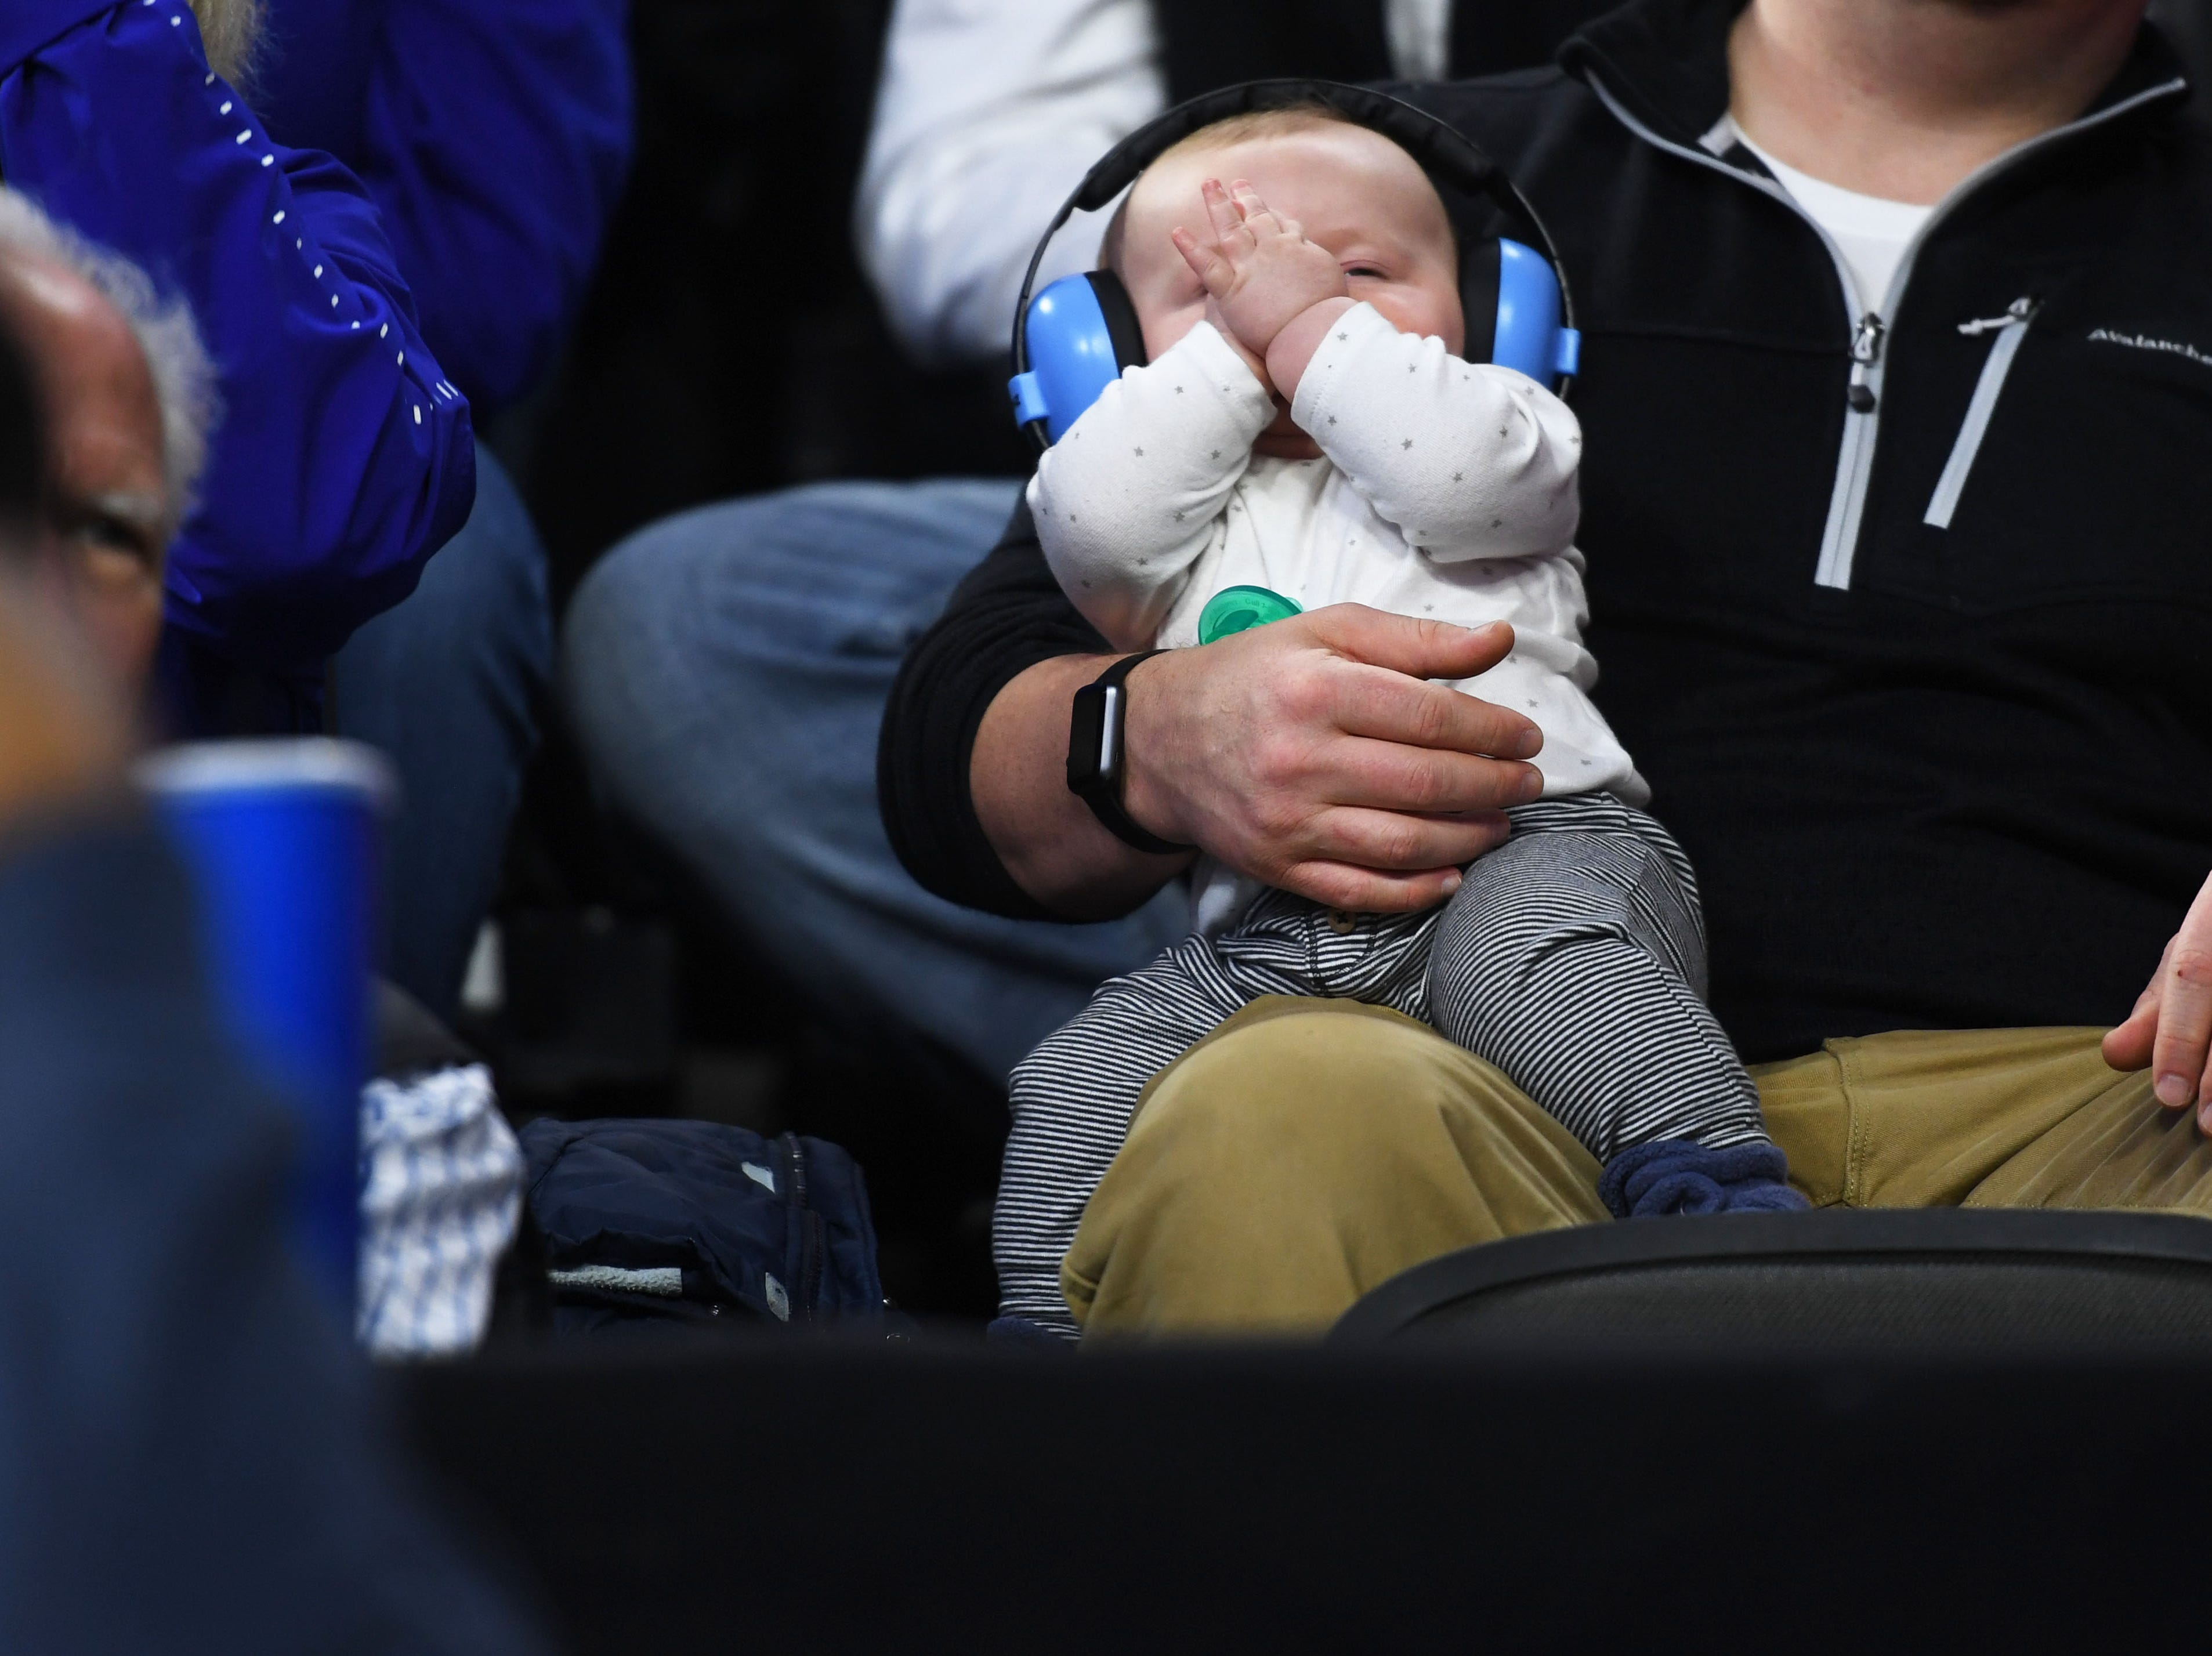 A baby closes it's eyes during the SDSU vs. Western Illinois game Saturday, March 9, in the Summit League tournament at the Denny Sanford Premier Center in Sioux Falls.